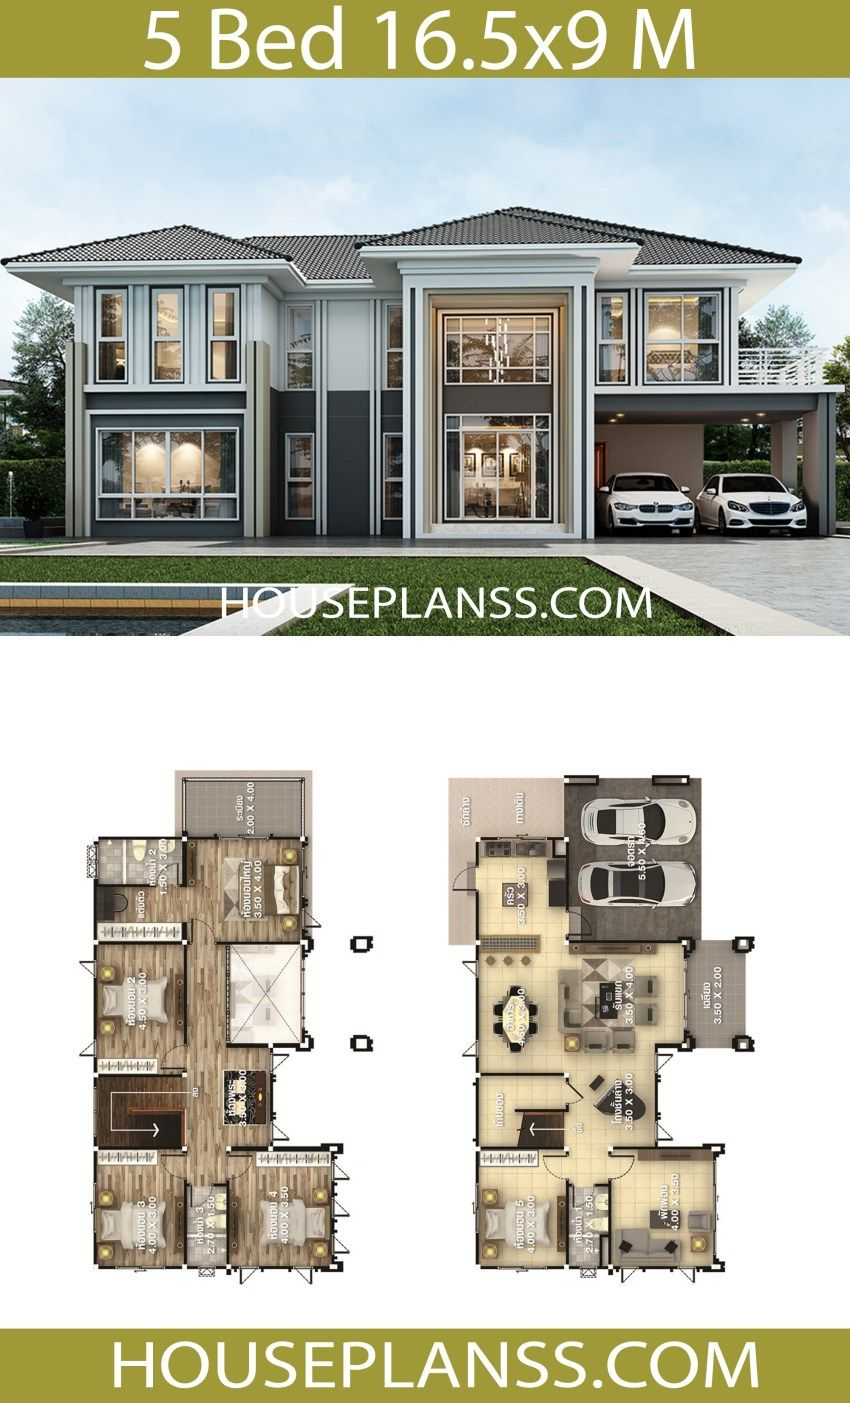 House Plans Idea 16 5x9 With 5 Bedrooms House Plans 3d Two Story House Design Beautiful House Plans Model House Plan